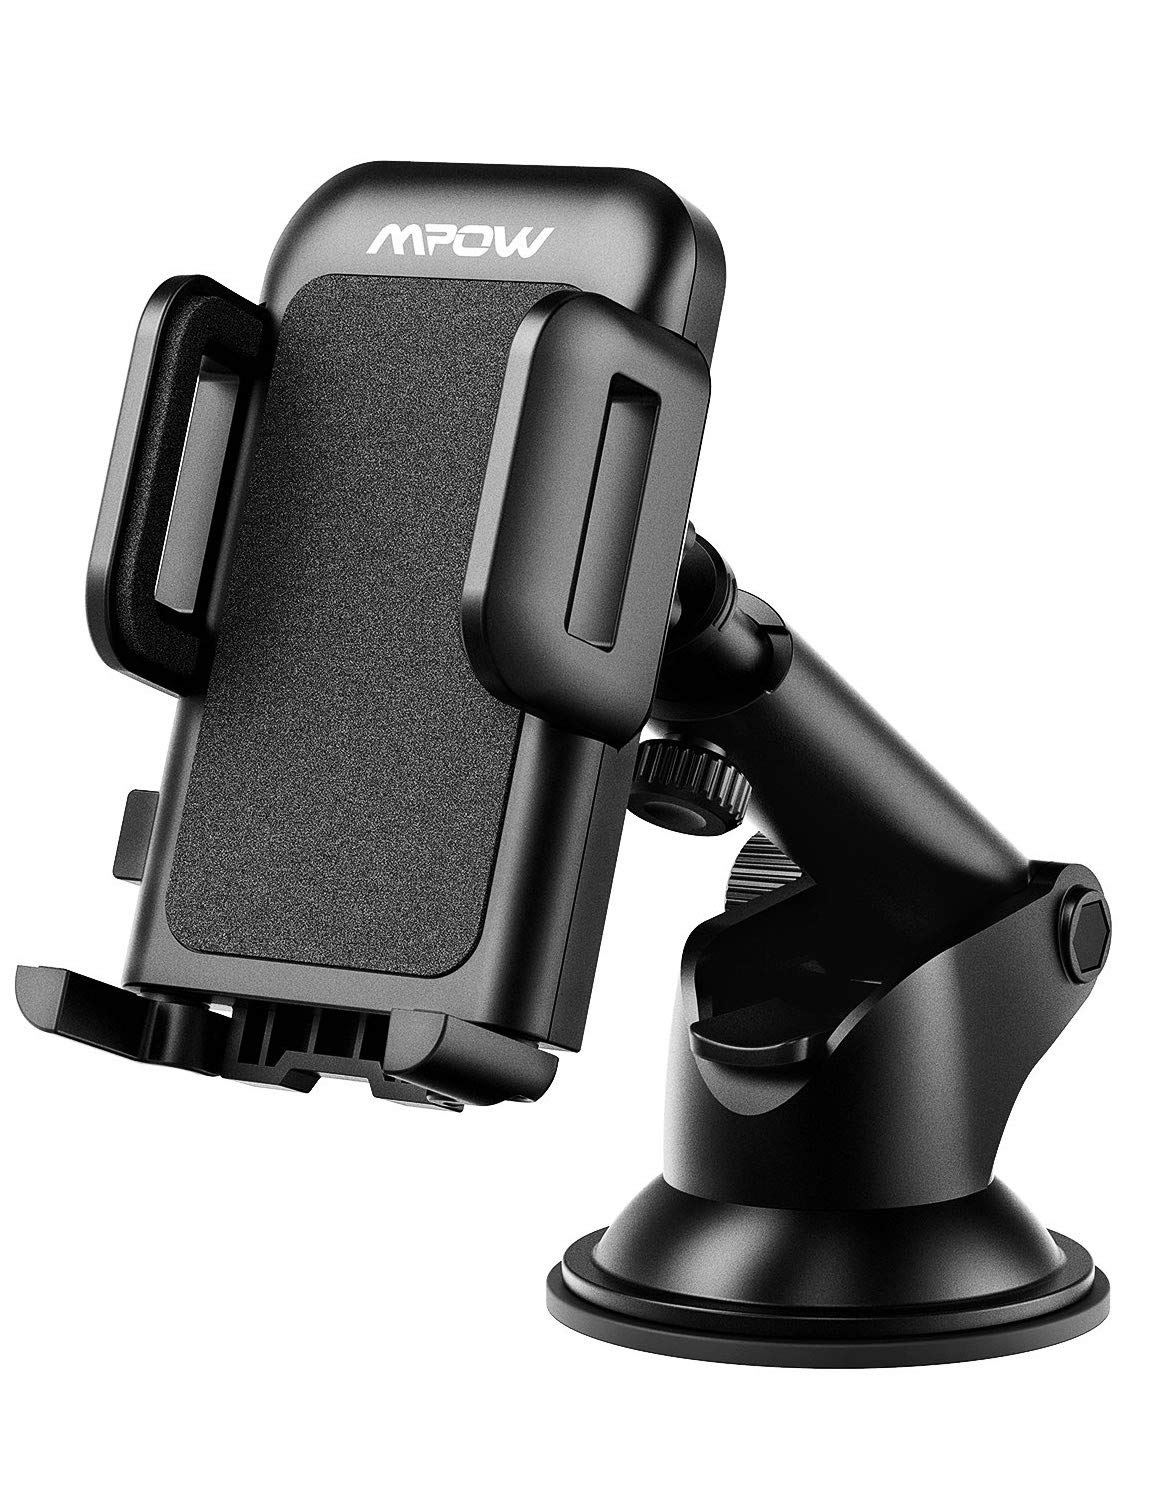 Mpow Car Phone Mount, Dashboard Car Phone Holder, Washable Strong Sticky Gel Pad with One-Touch Design Compatible iPhone 11 pro,11 pro max,X,XS,XR,8,7,6 Plus,Galaxy S7,8,9,10,Google Nexus, Black by Mpow